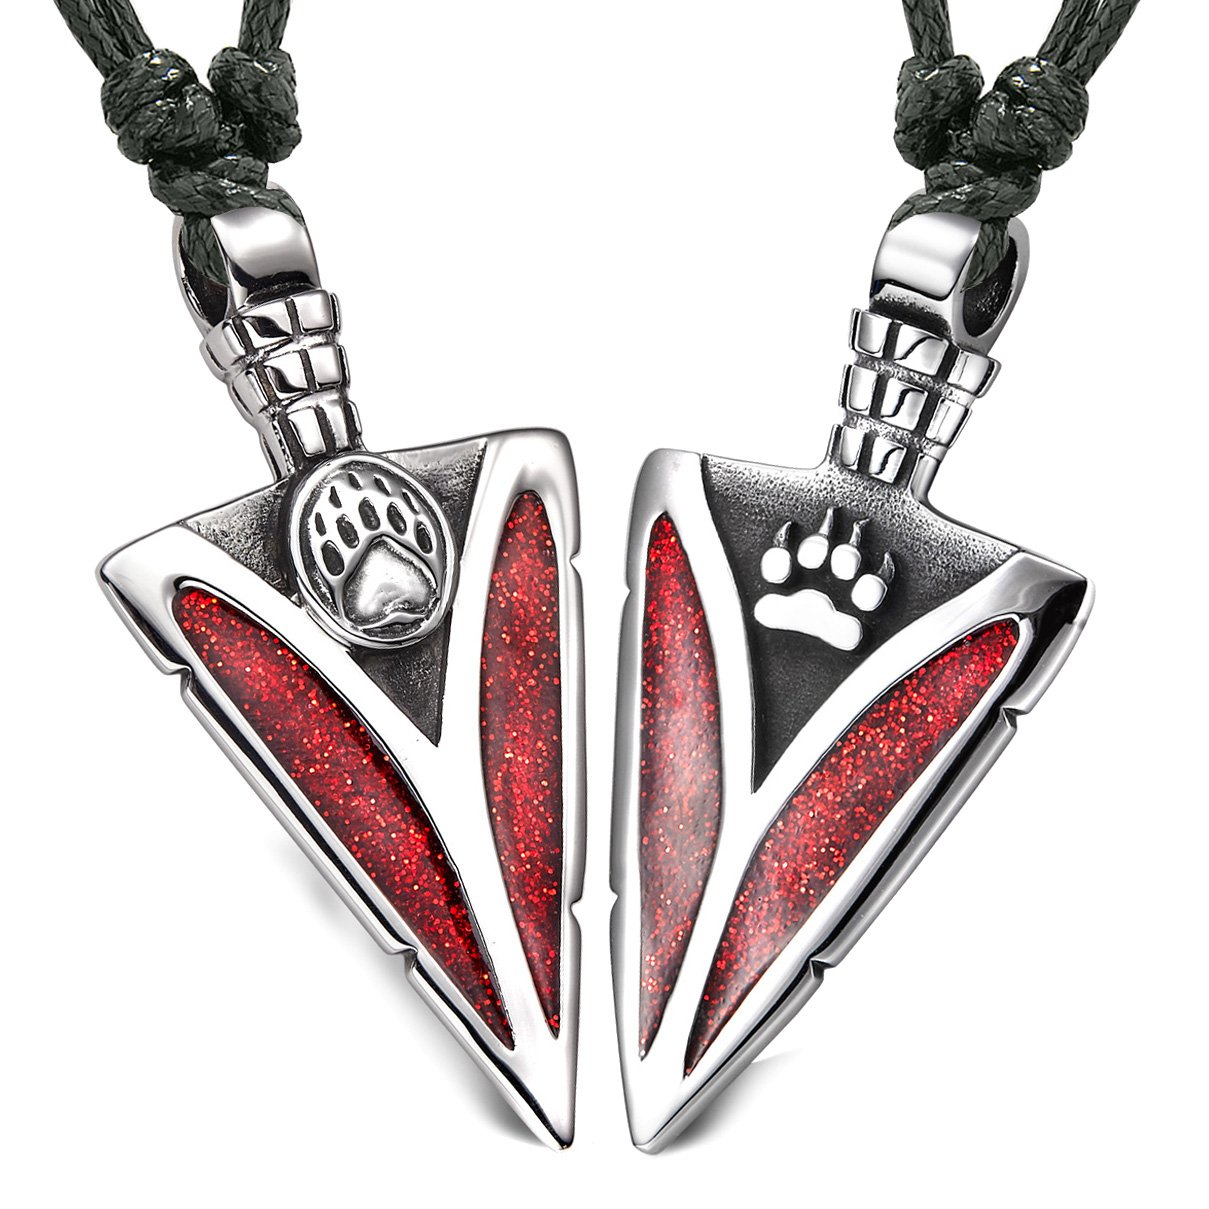 Arrowhead Wolf and Bear Paws Love Couples or BFF Set Amulets Sparkling Royal Red Adjustable Necklaces